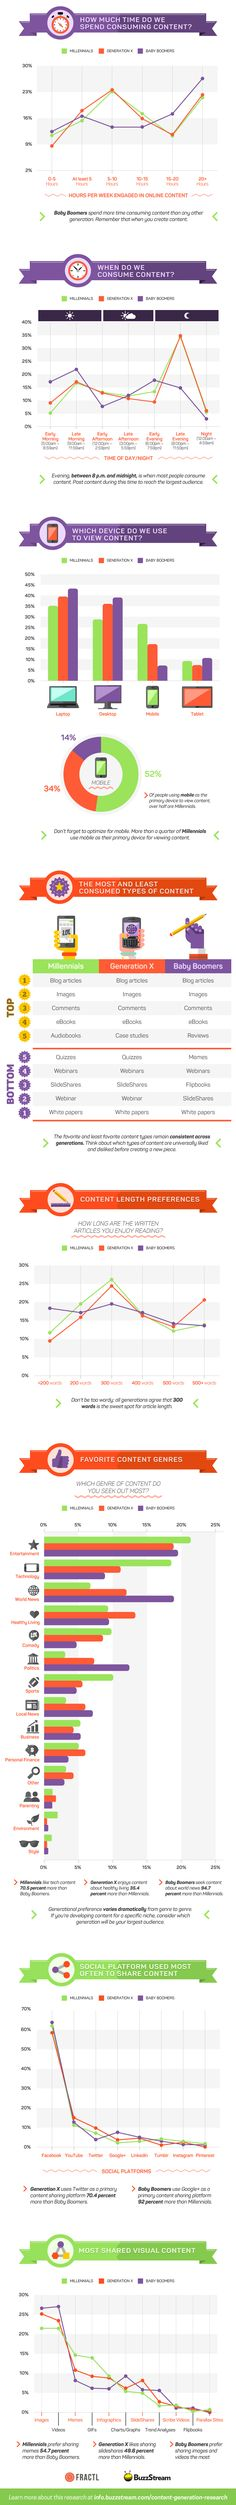 Exposing The Generational Content Gap: Three Ways to Reach Multiple Generations - #infographic